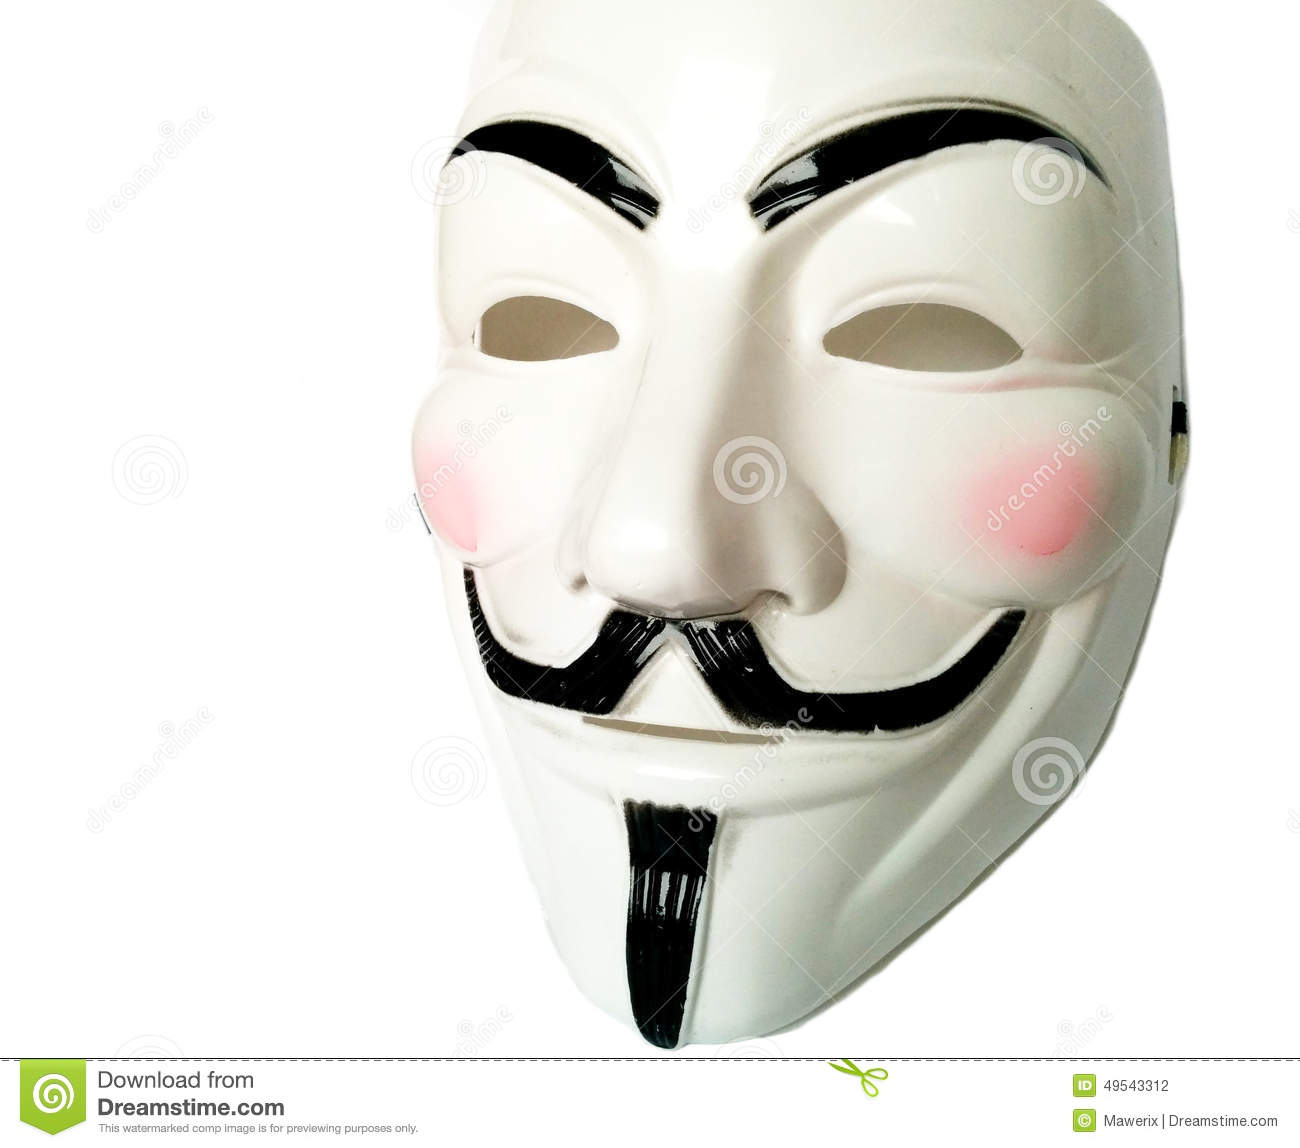 V for vendetta mask  Etsy